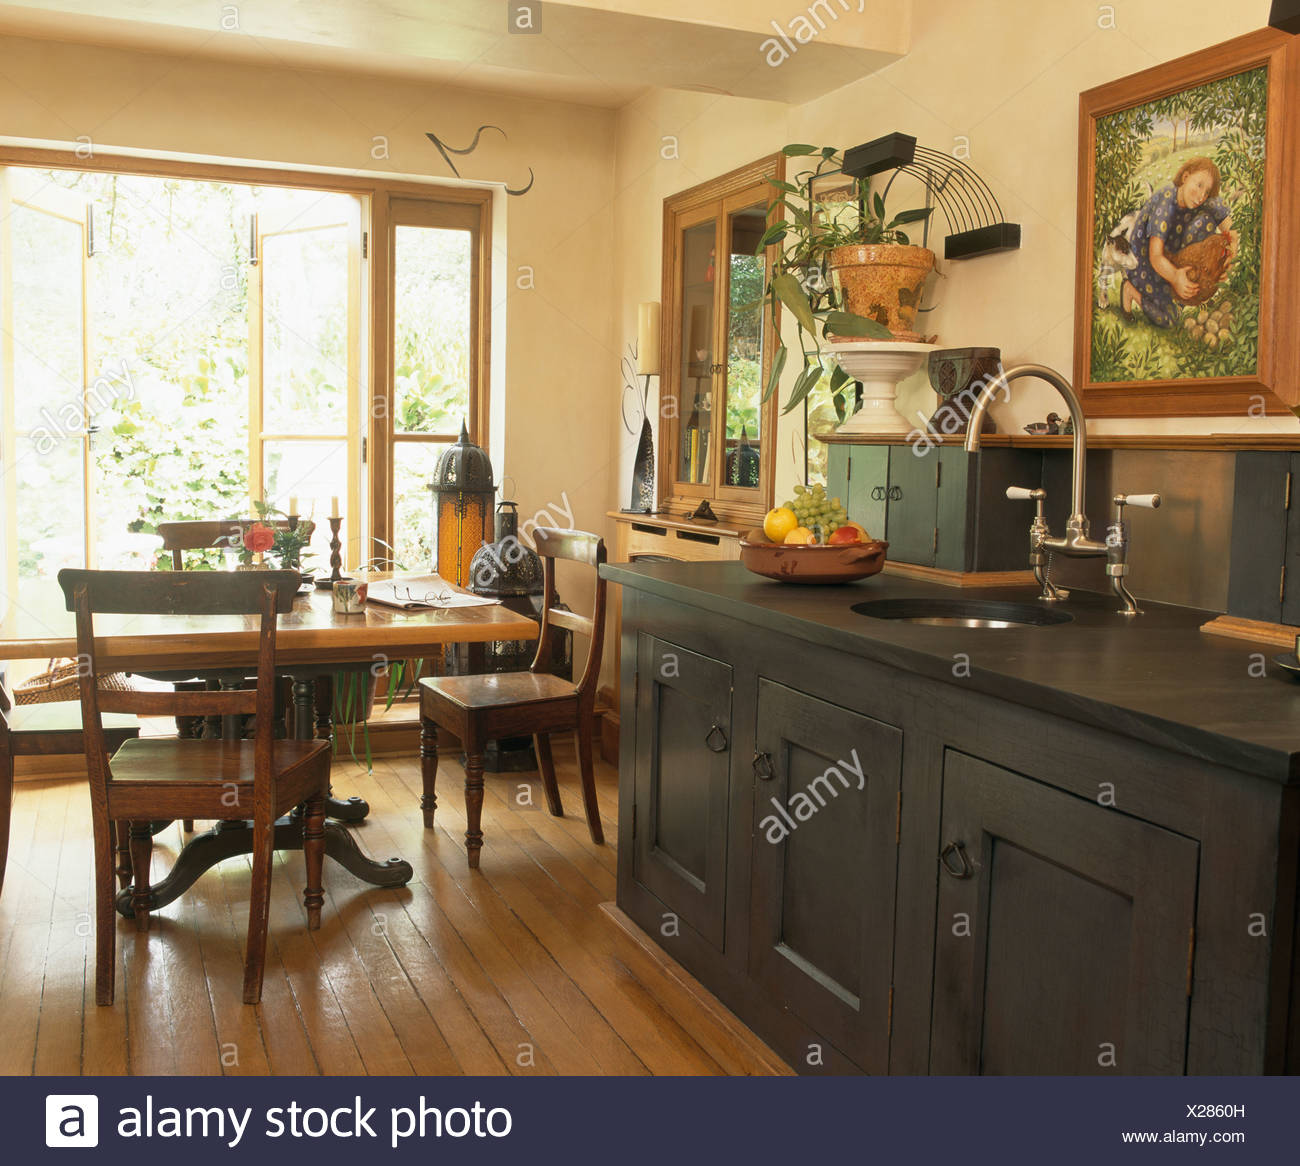 Antique table and chairs in cream country kitchen with reclaimed oak  flooring and dark gray kitchen unit with slate worktop - Antique Table And Chairs In Cream Country Kitchen With Reclaimed Oak